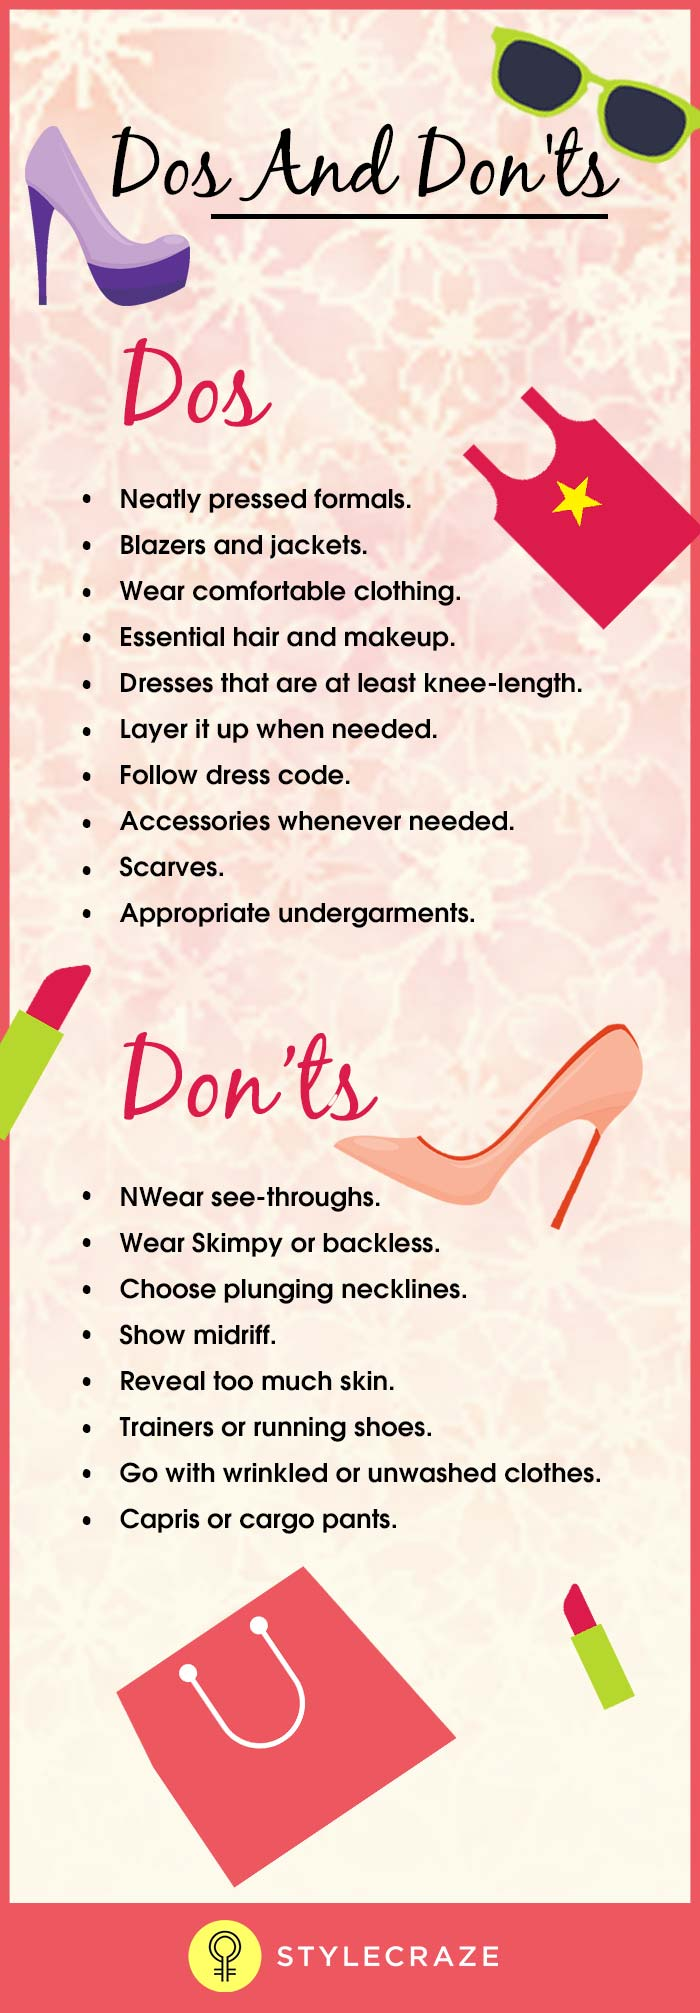 Dos-And-Don'ts